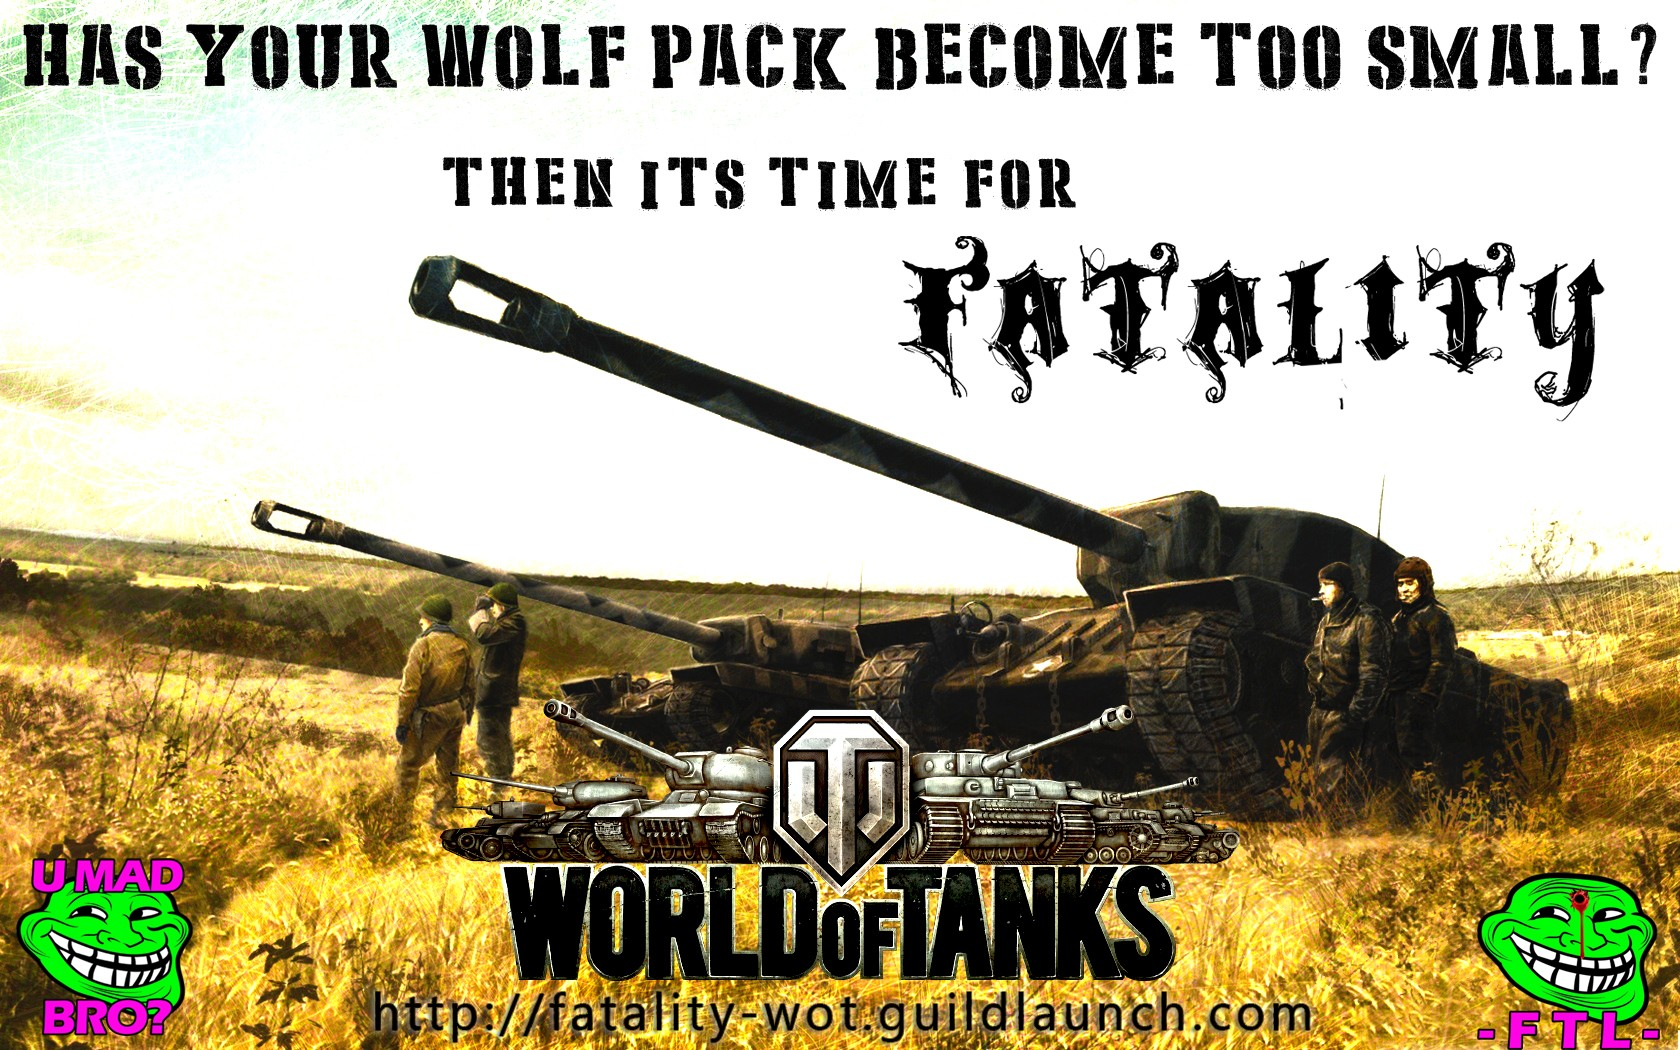 AMERICAN TANKS FTL FTLTY CLAN WORLD OF TANKS FATALITY FATAL1TY